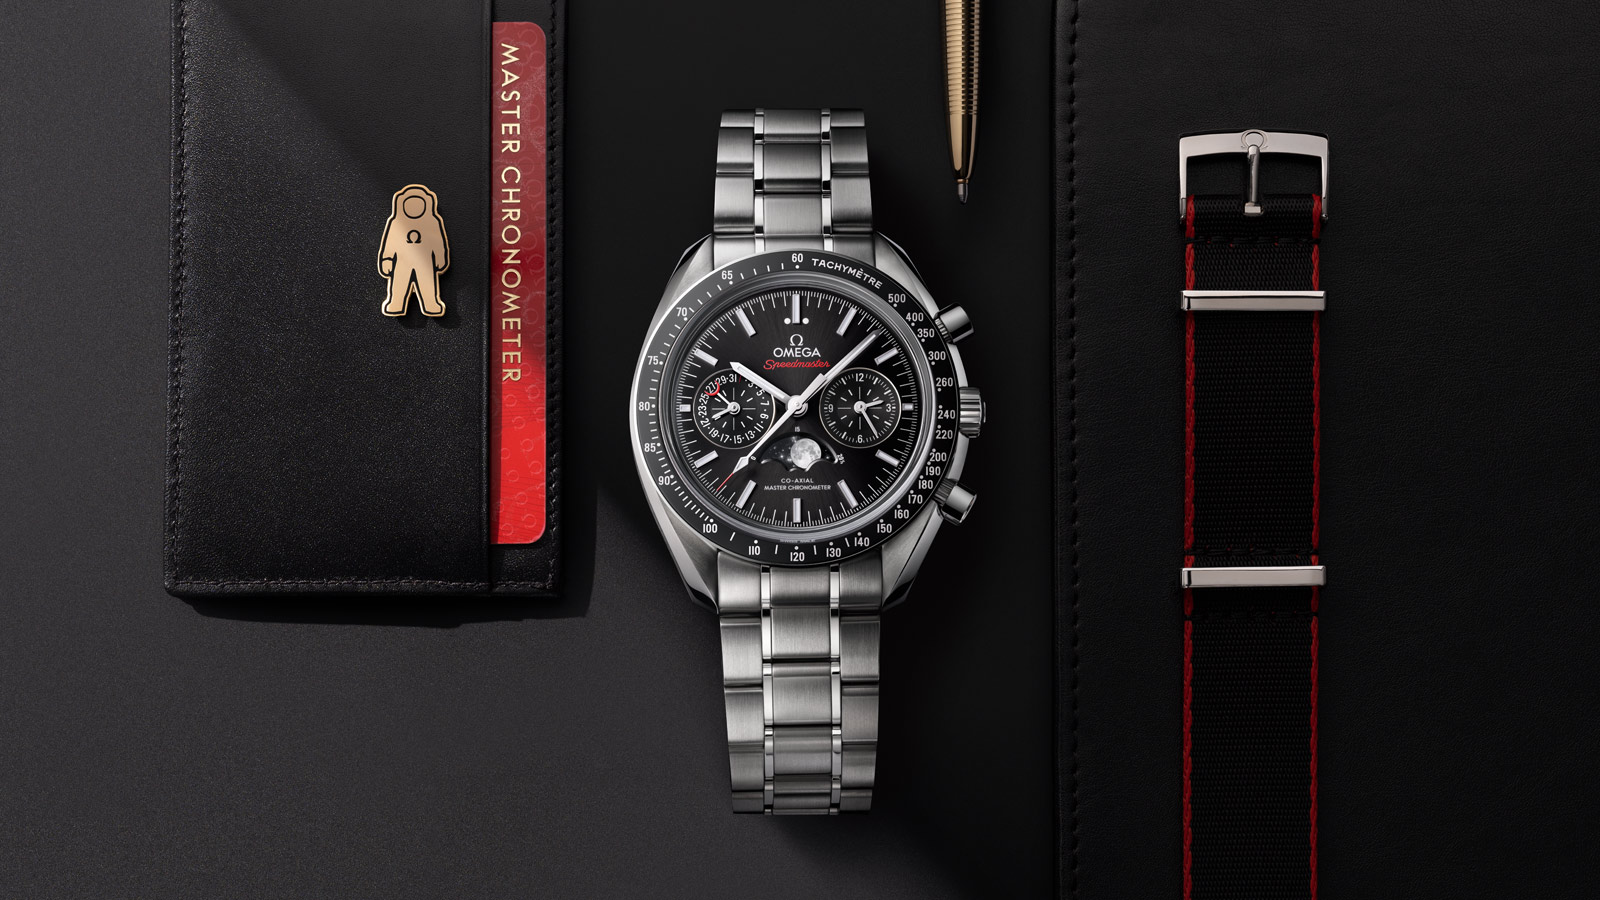 Speedmaster Moonwatch Moonwatch Omega Co‑Axial Master Chronometer Moonphase Chronograph 44.25 mm Watch - 304.30.44.52.01.001